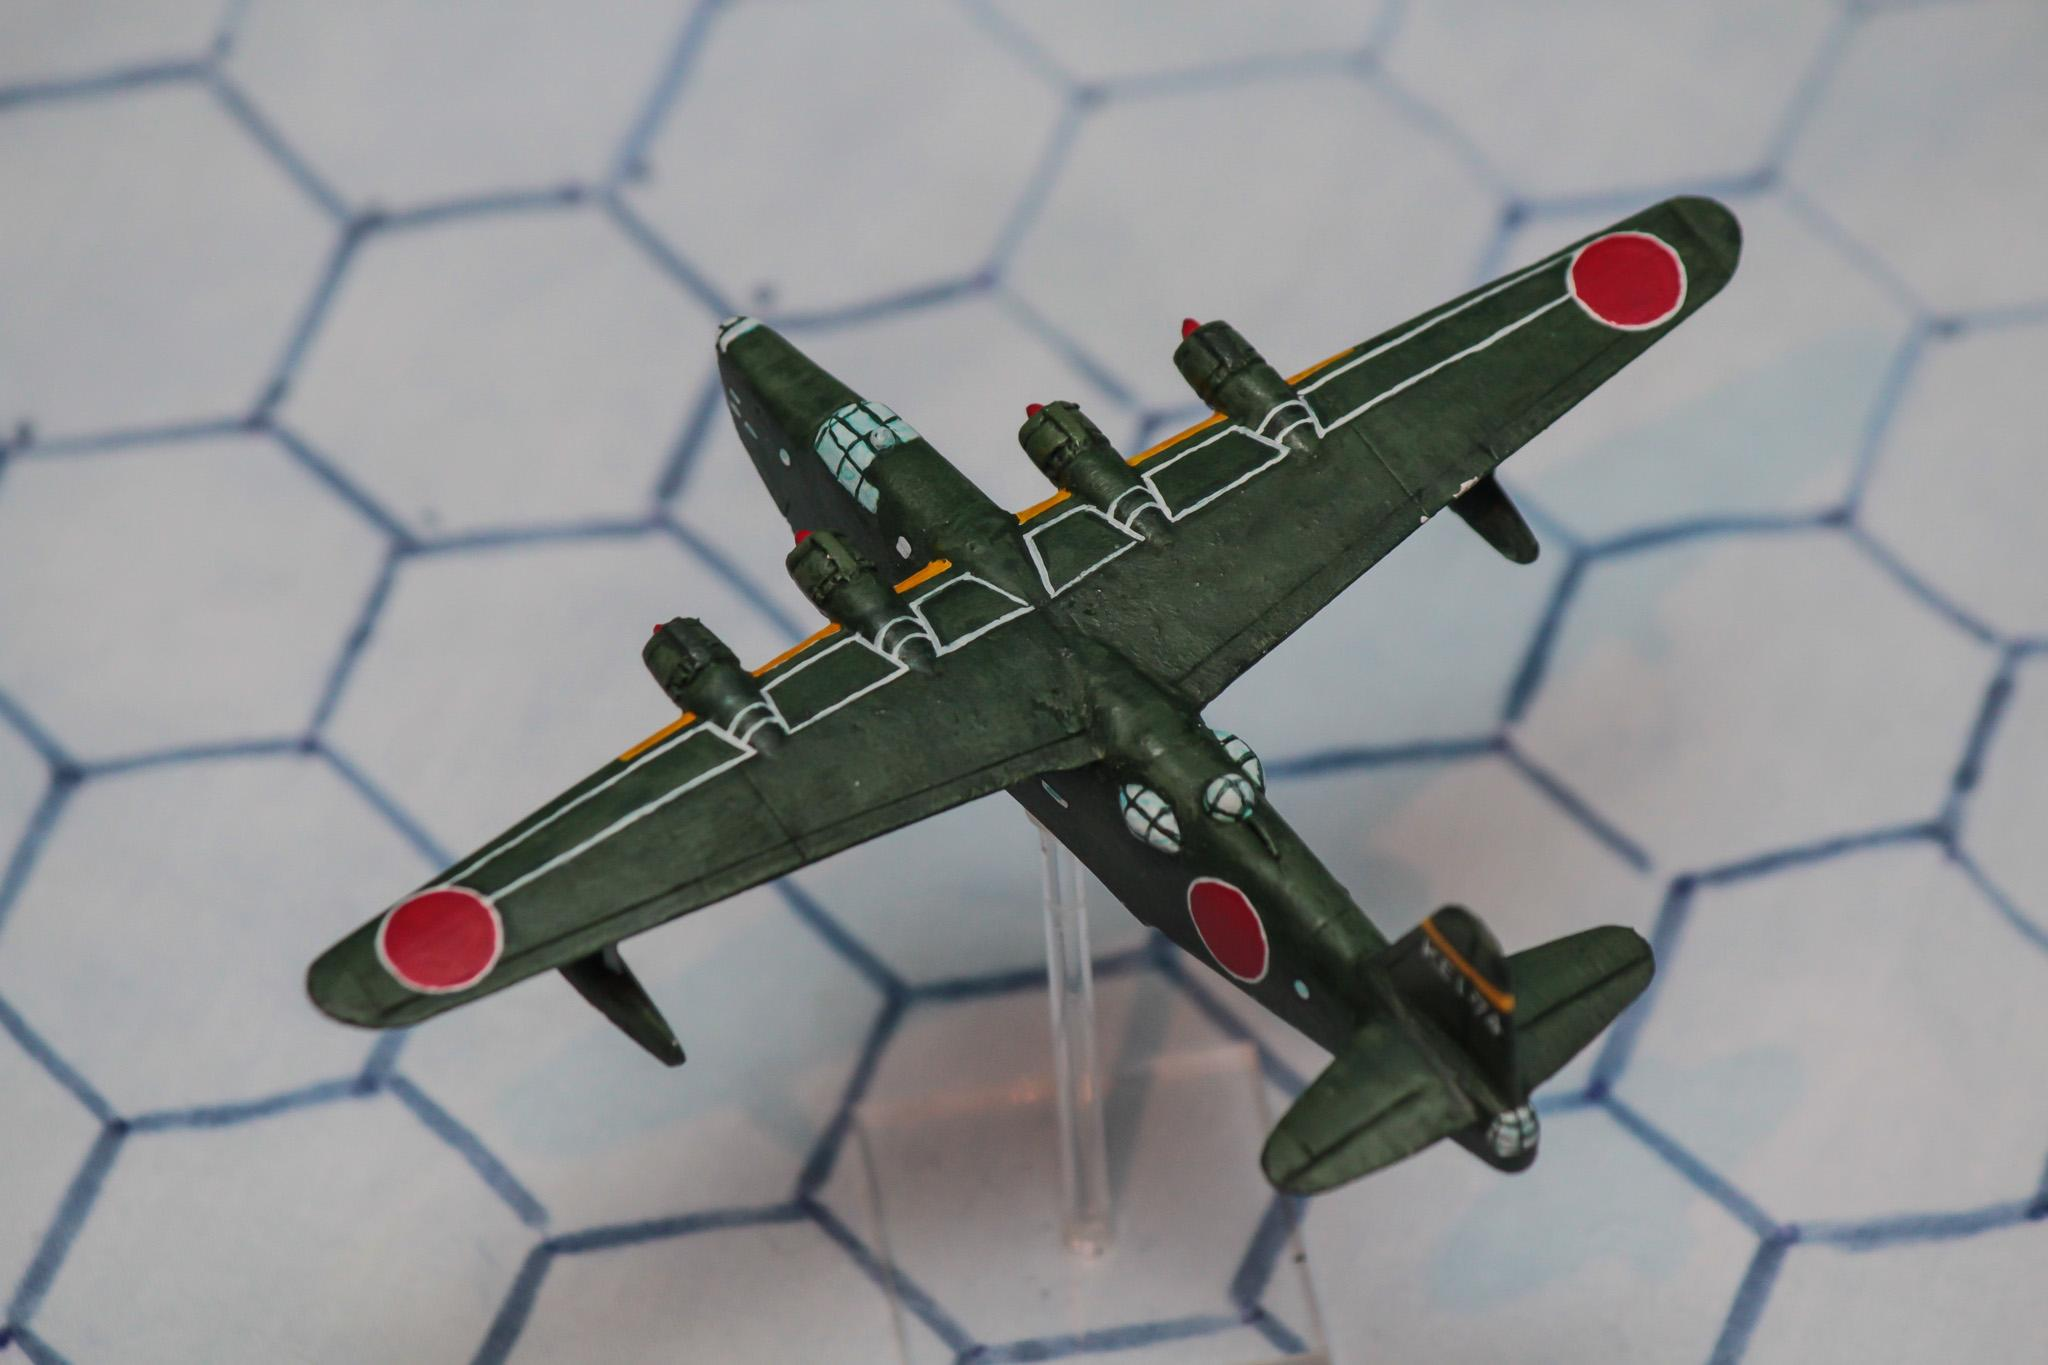 1:300 Scale, 6mm Scale, Air Combat, Bomber, Imperial Japan, Japanese, World War 2